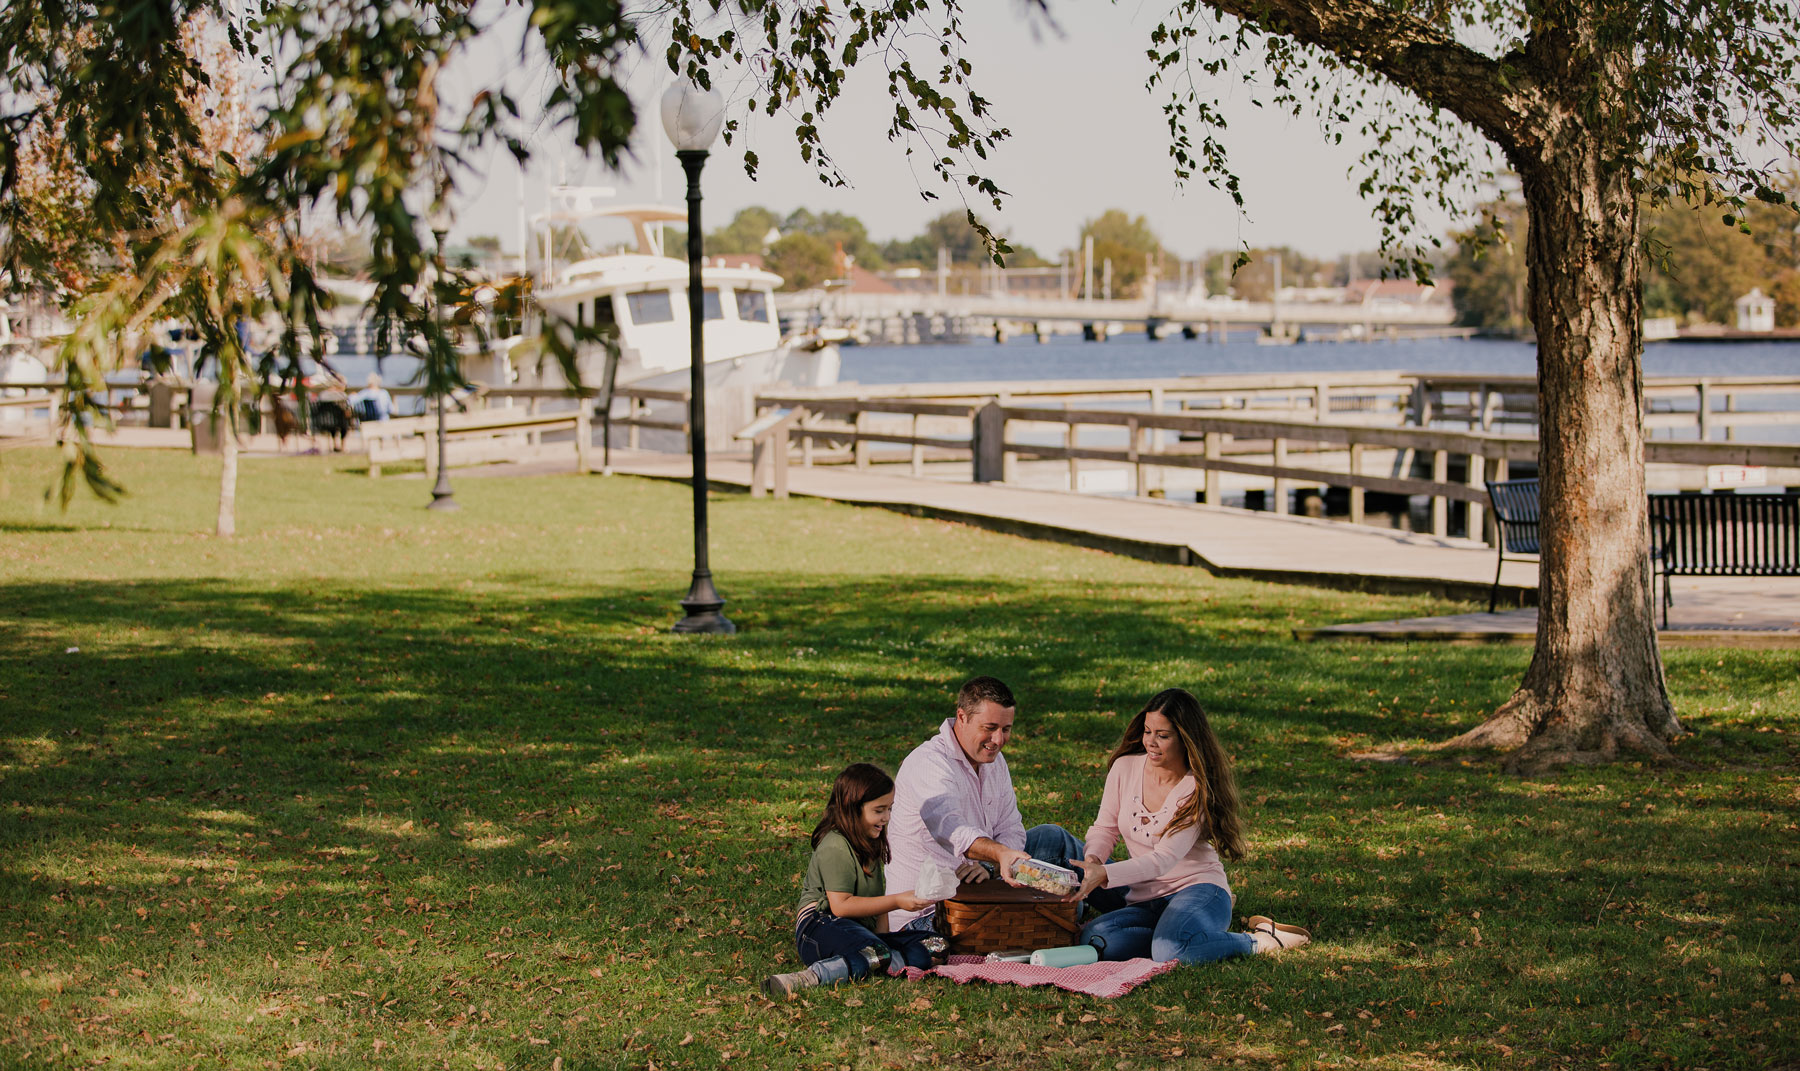 family picnic in at waterfront park